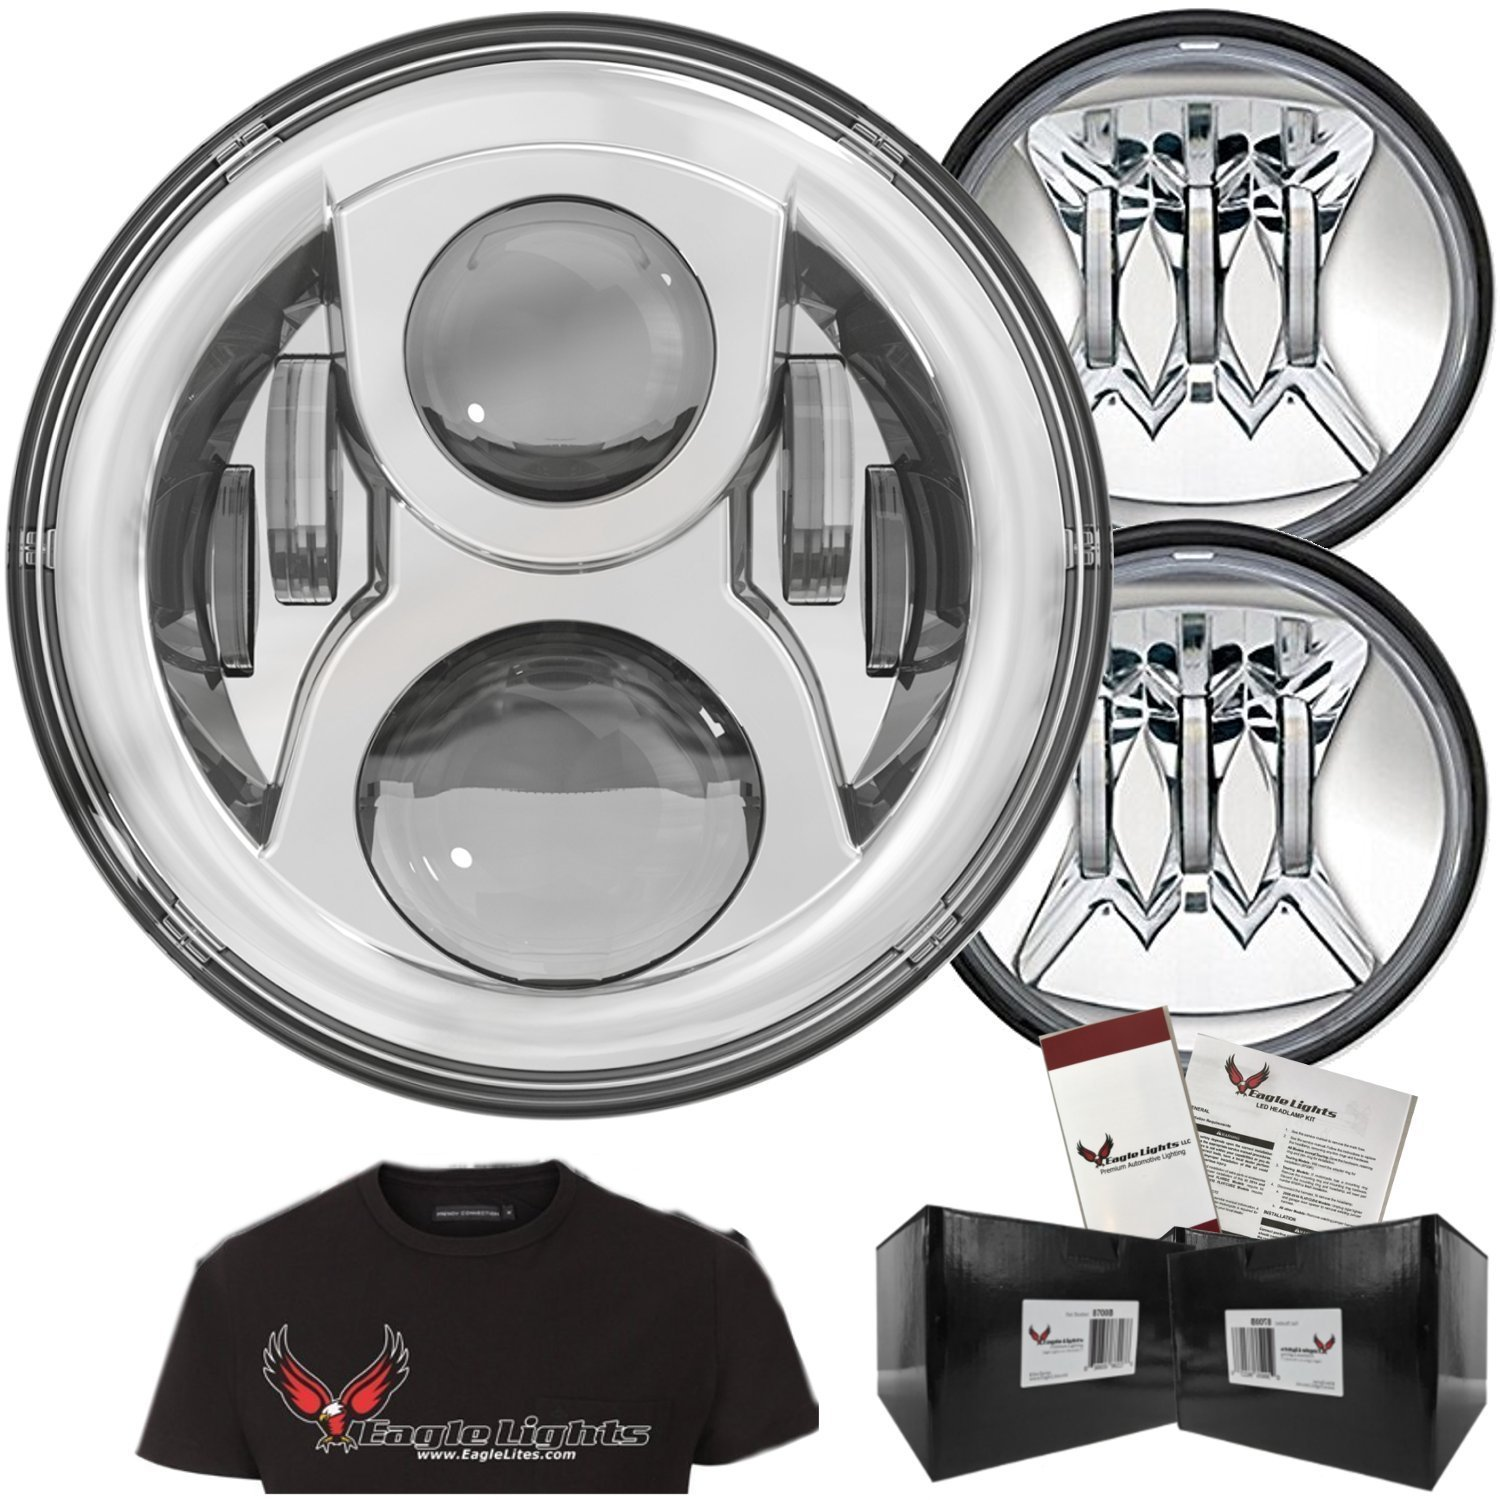 """Eagle Lights 7"""" Chrome Round LED Headlight Kit 8700G2 Gen II Daymaker with Gen II Passing Lamps"""